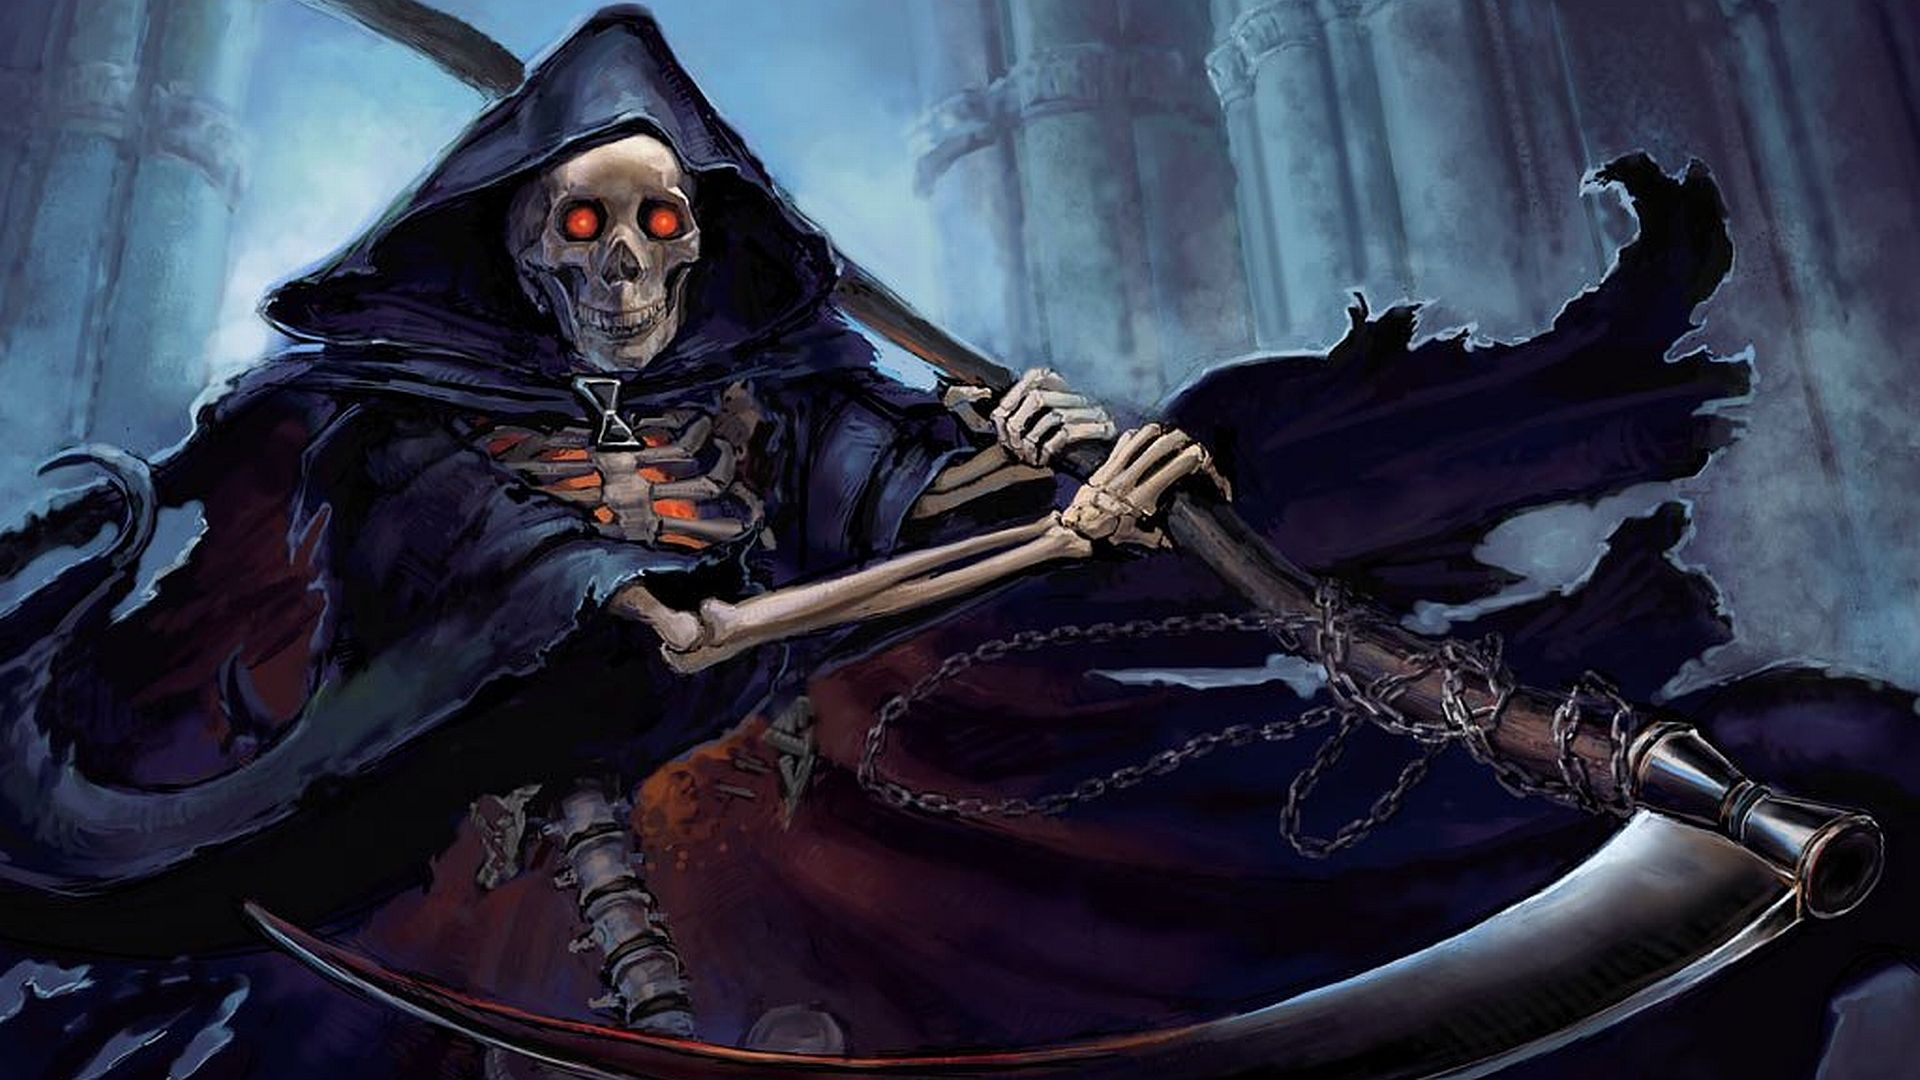 Dark Grim Reaper Purple Wallpaper For Android In 2020 Marvel Comics Wallpaper Grim Reaper Grim Reaper Pictures